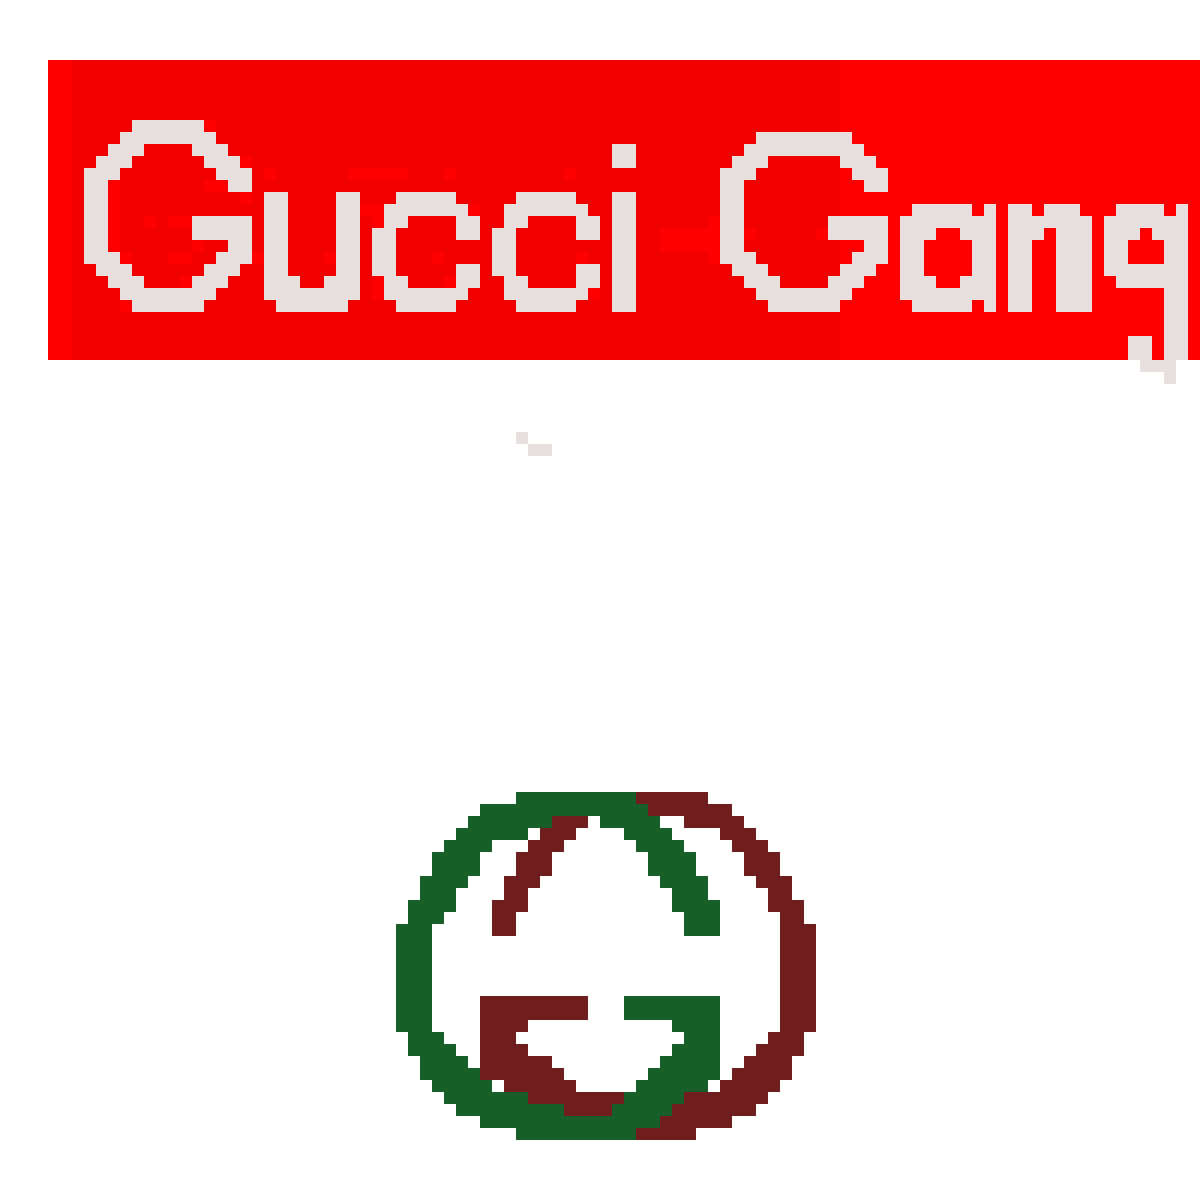 Gucci gang png. Pixilart by anonymous colors